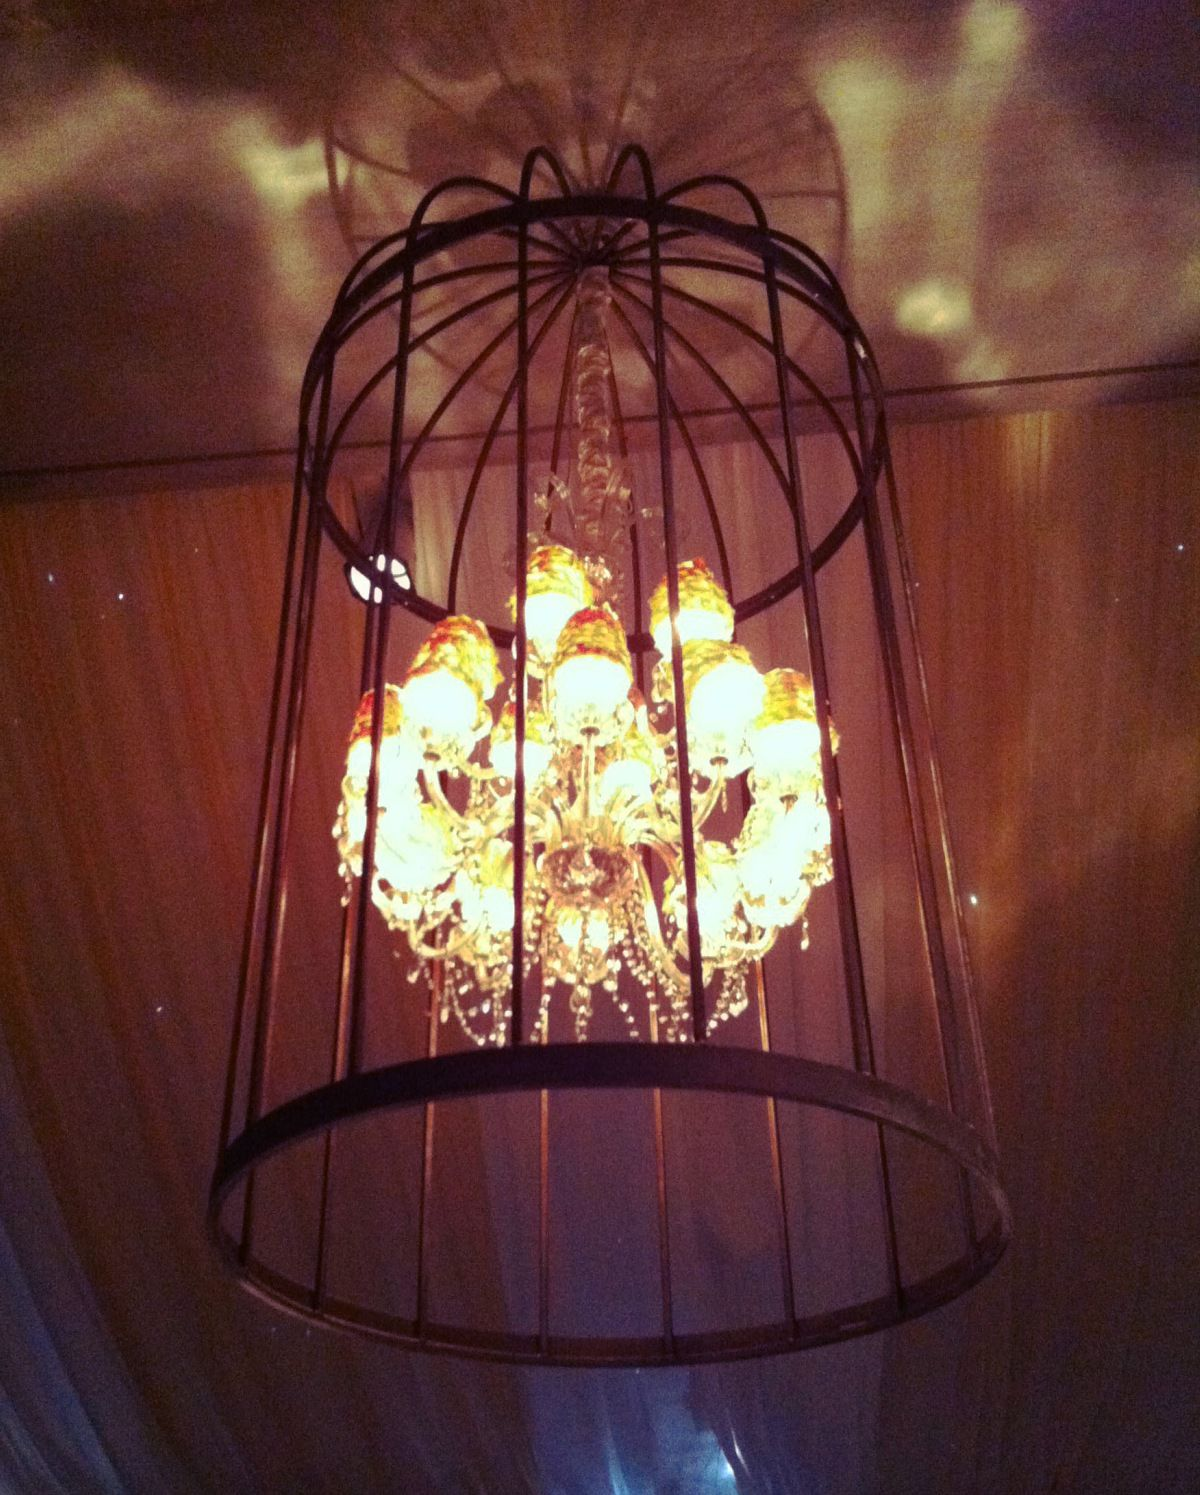 chandelier inside a birdcage /// #wedding #chandelier #birdcage #party #event #elegant #EventuresInc